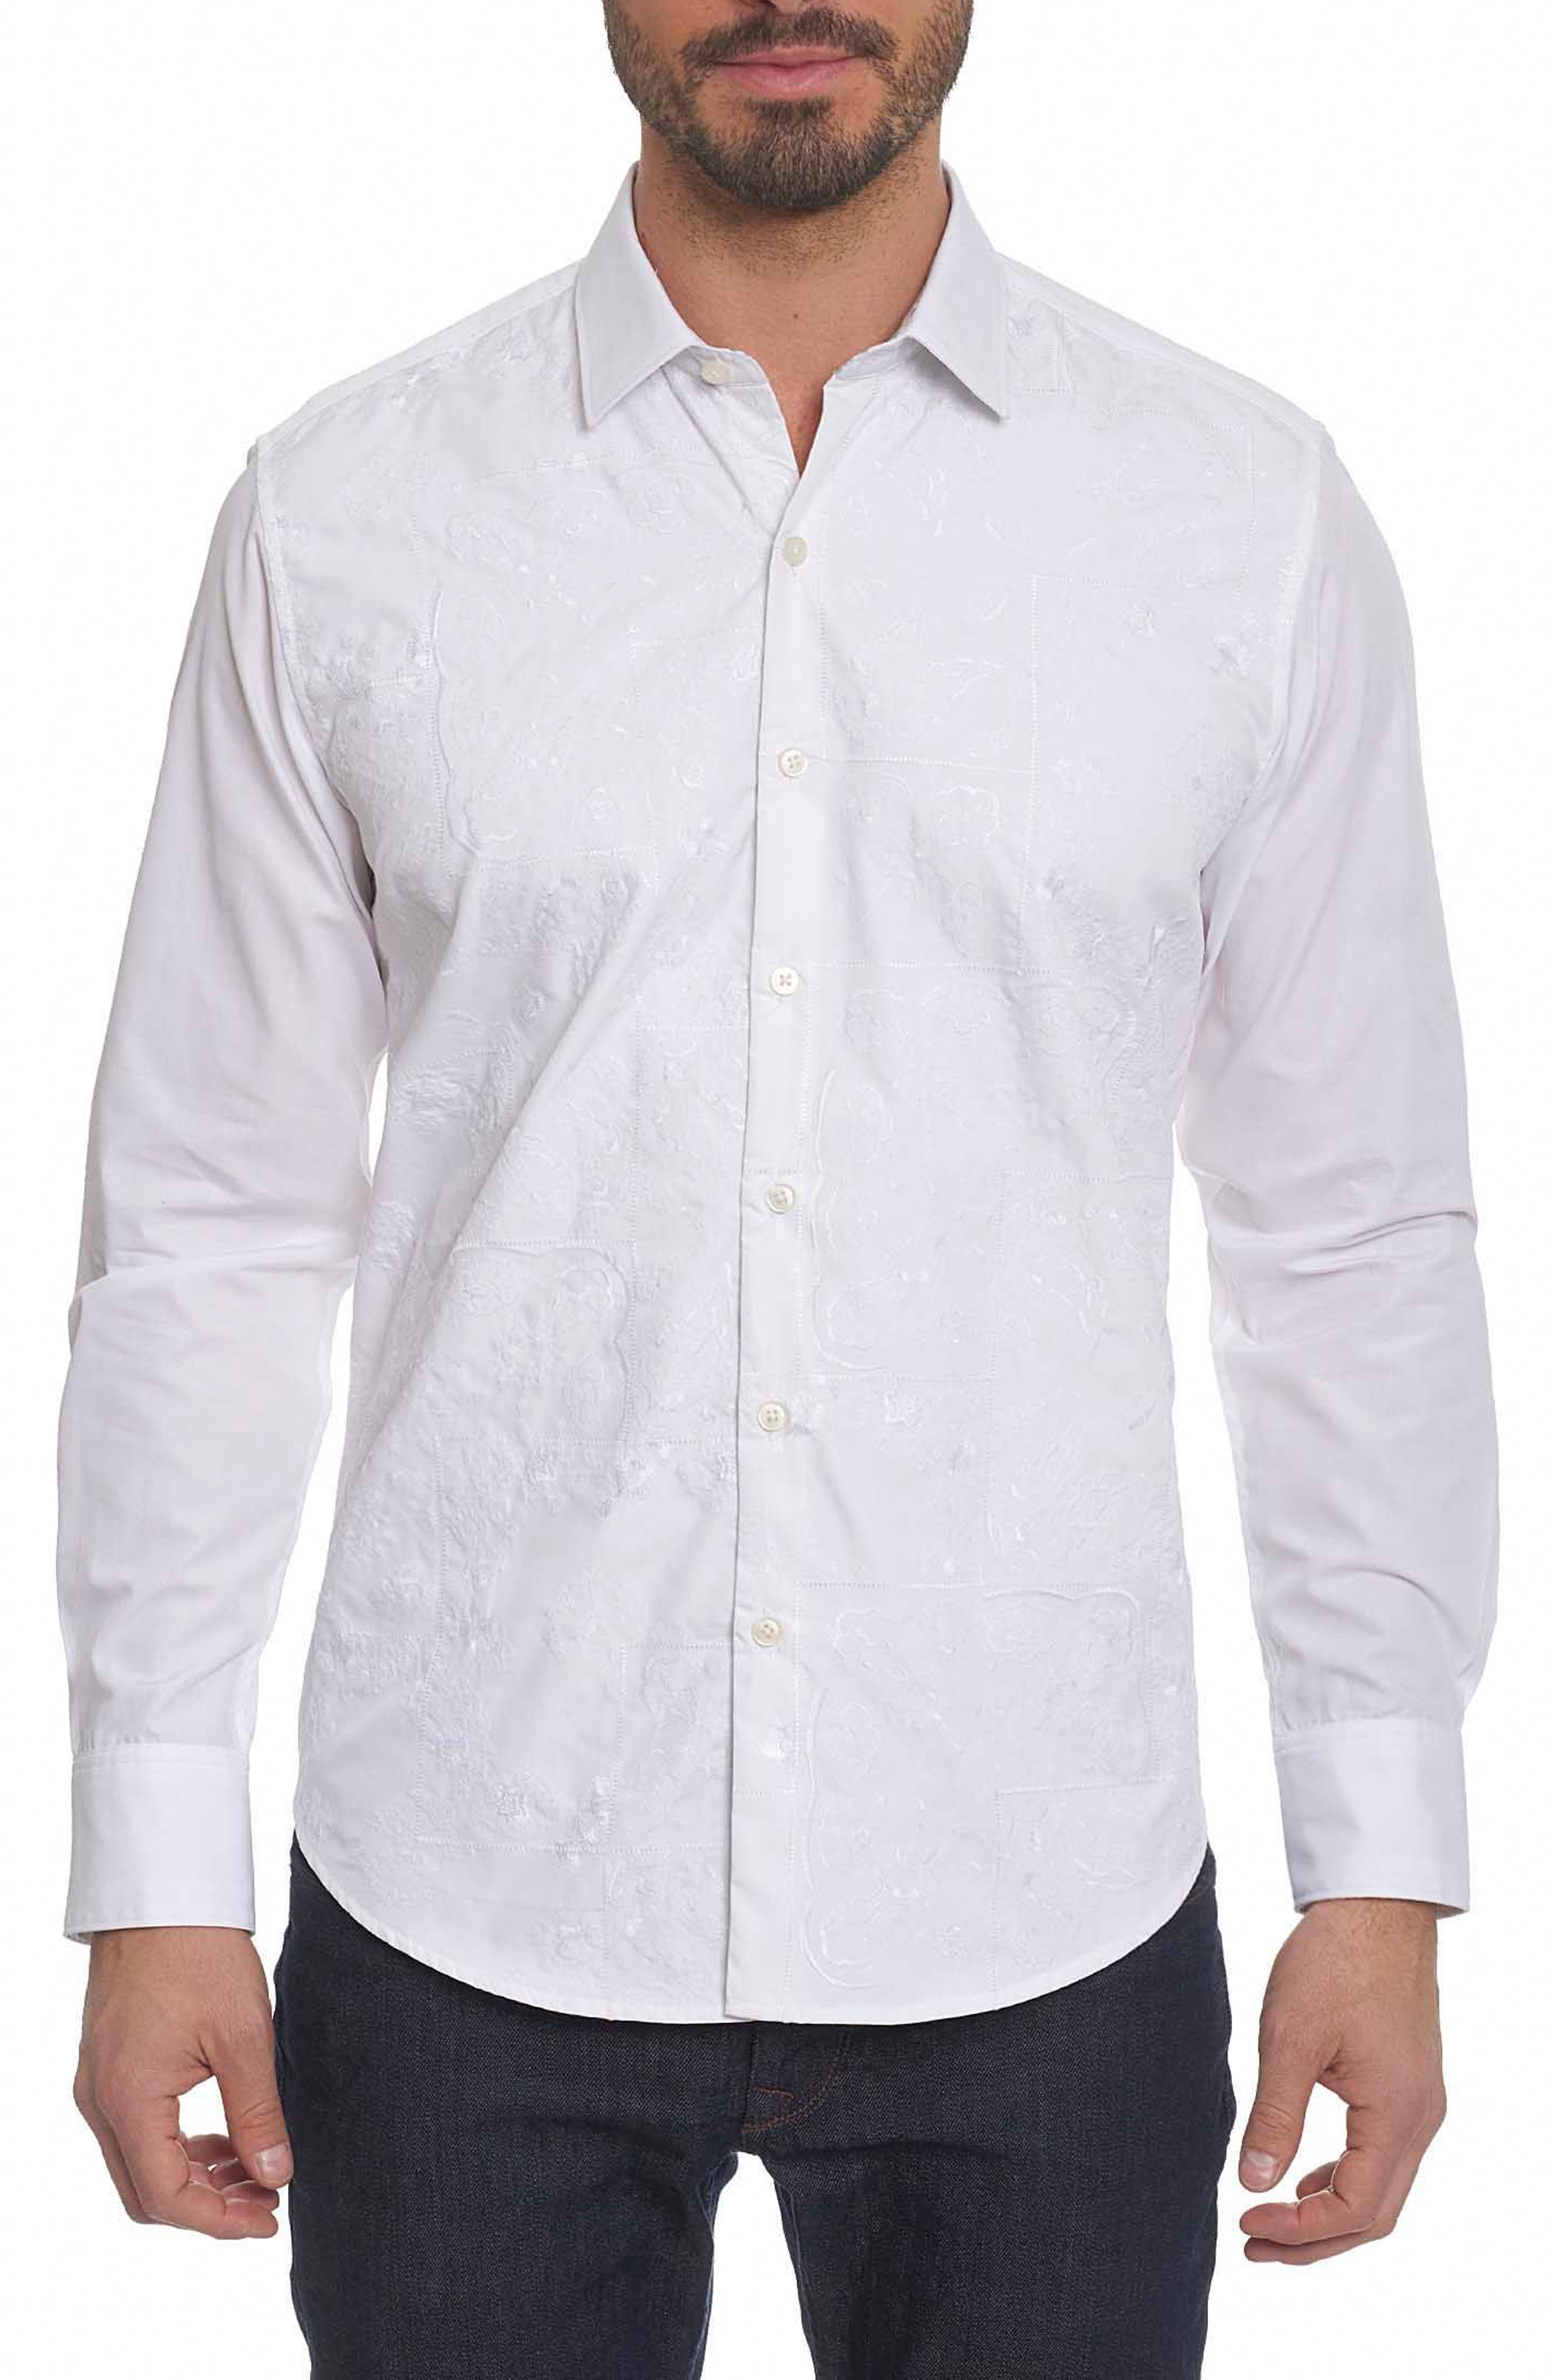 Onyx Classic Fit Embroidered Sport Shirt,                         Main,                         color, White